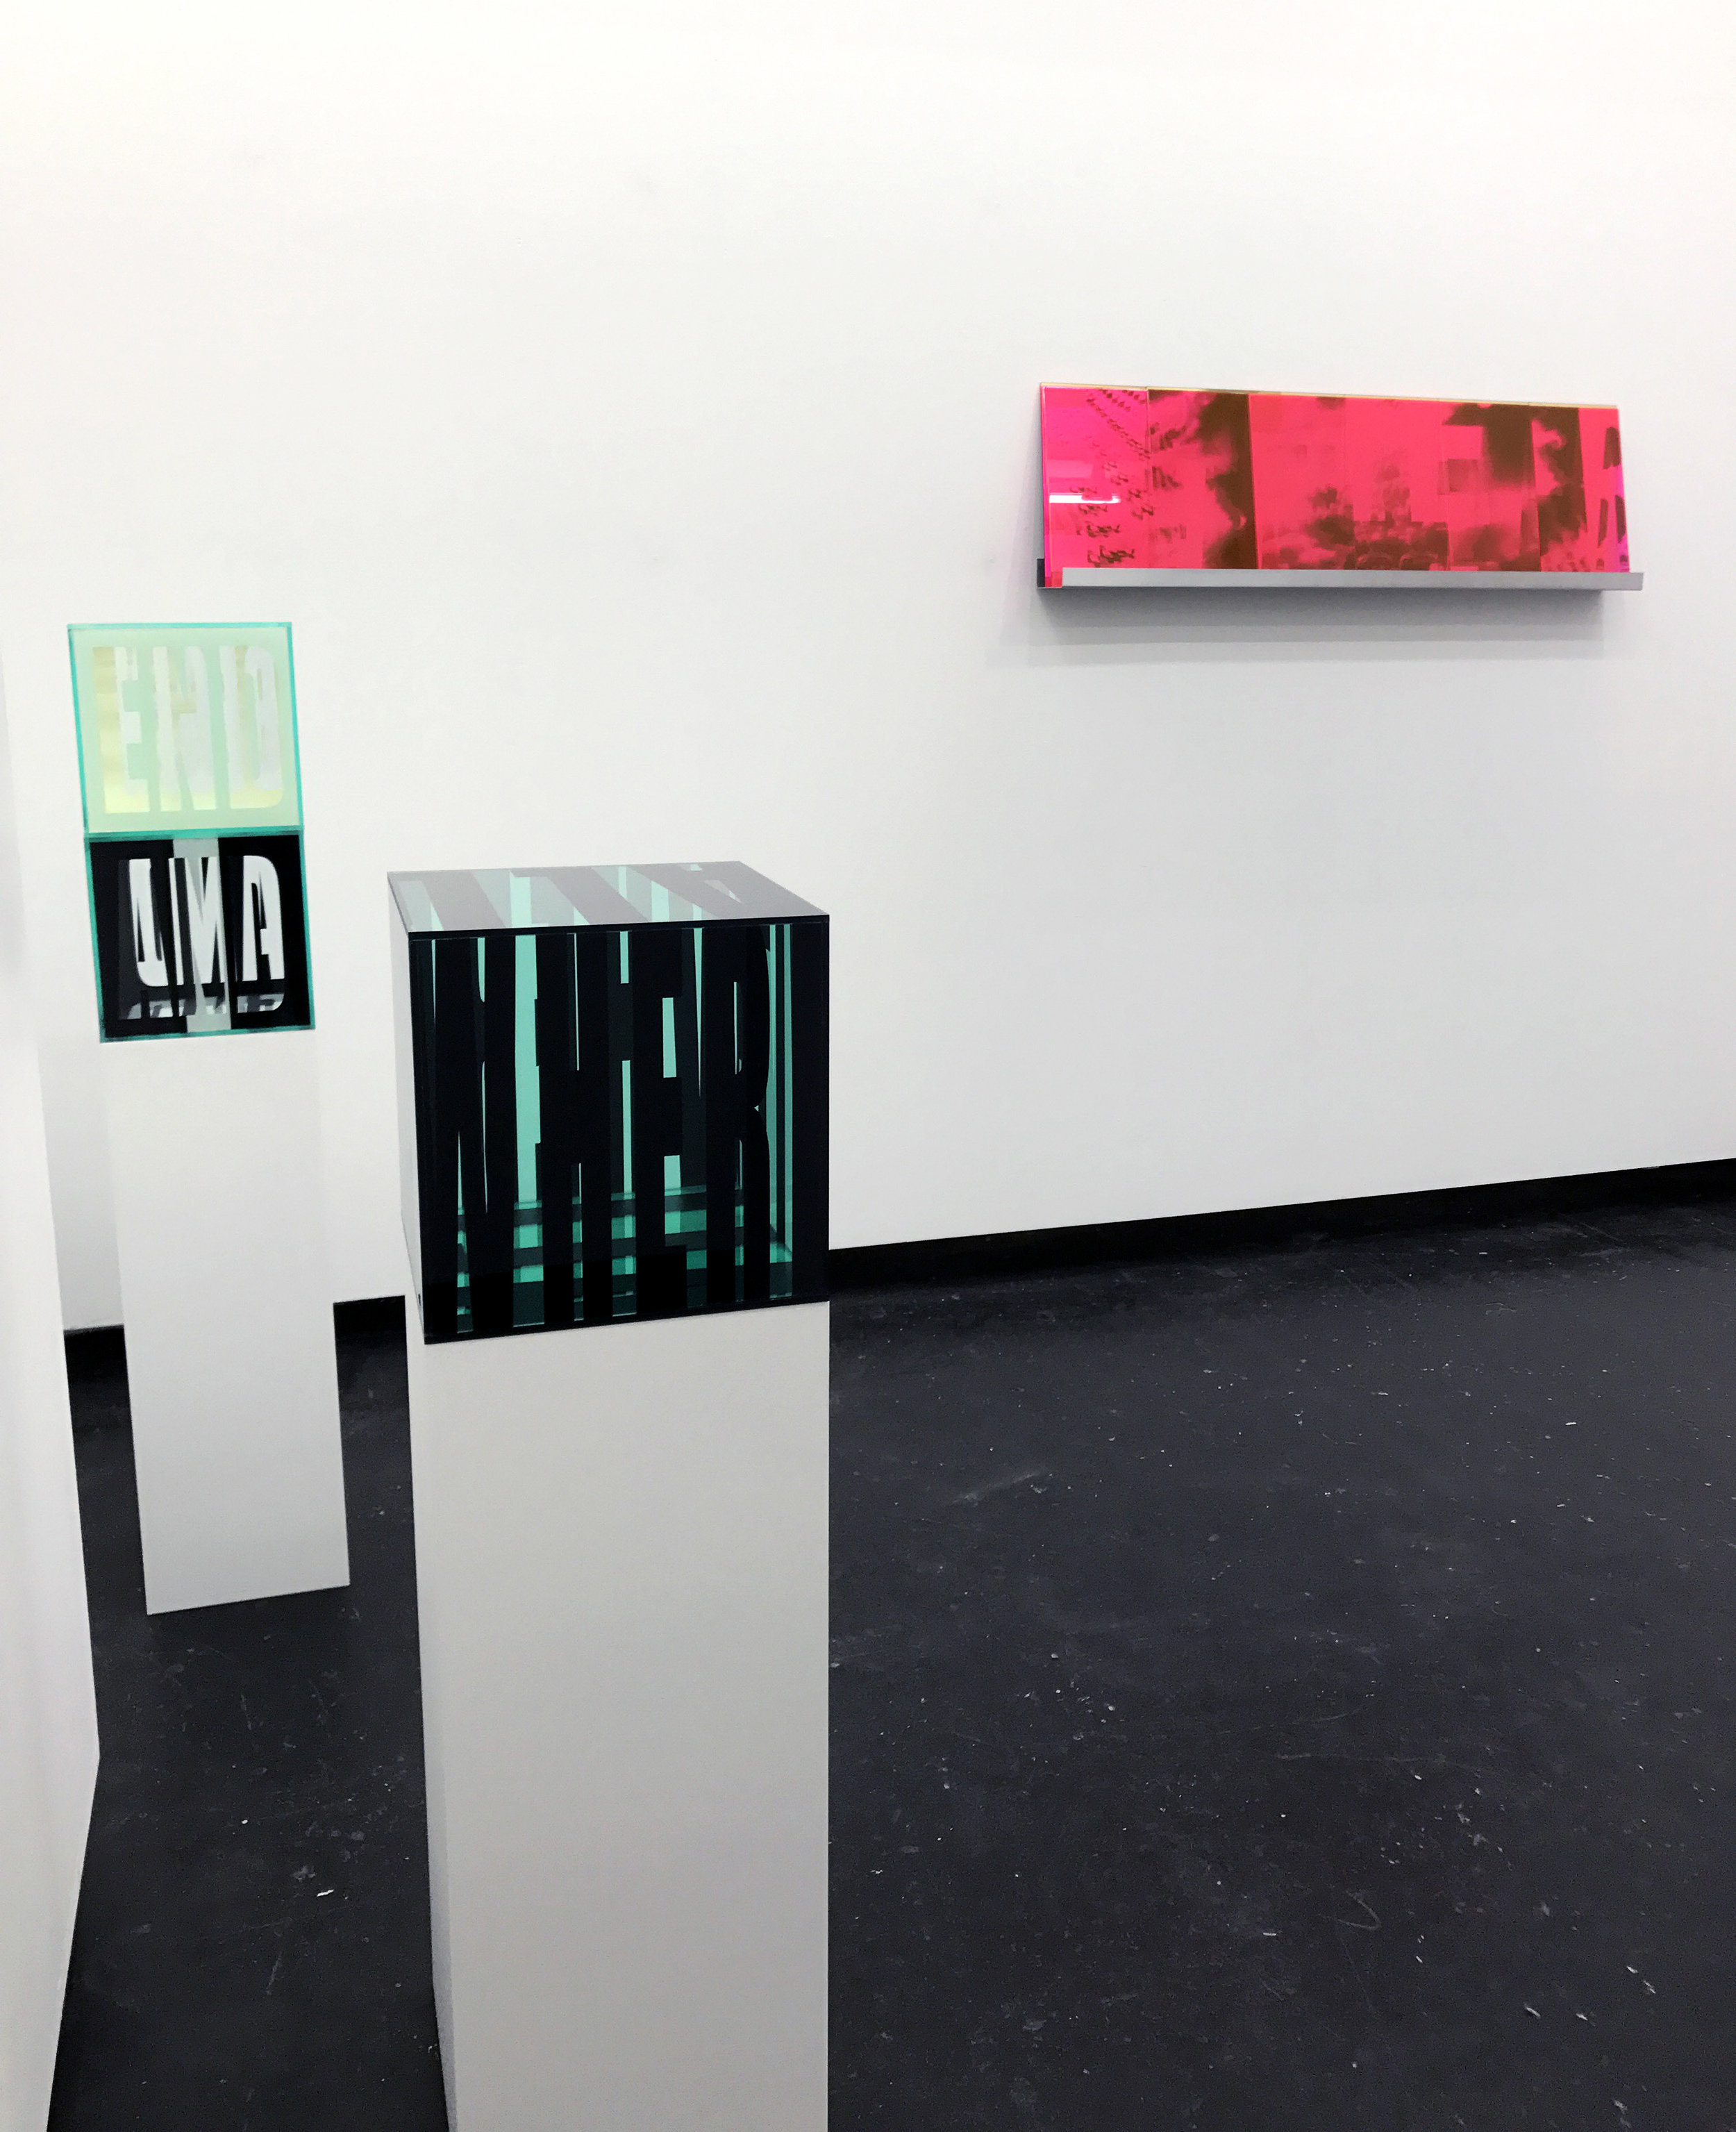 In Parallel - Kristin Bauer solo exhibition at Nicholas Projects; Melbourne, Australia